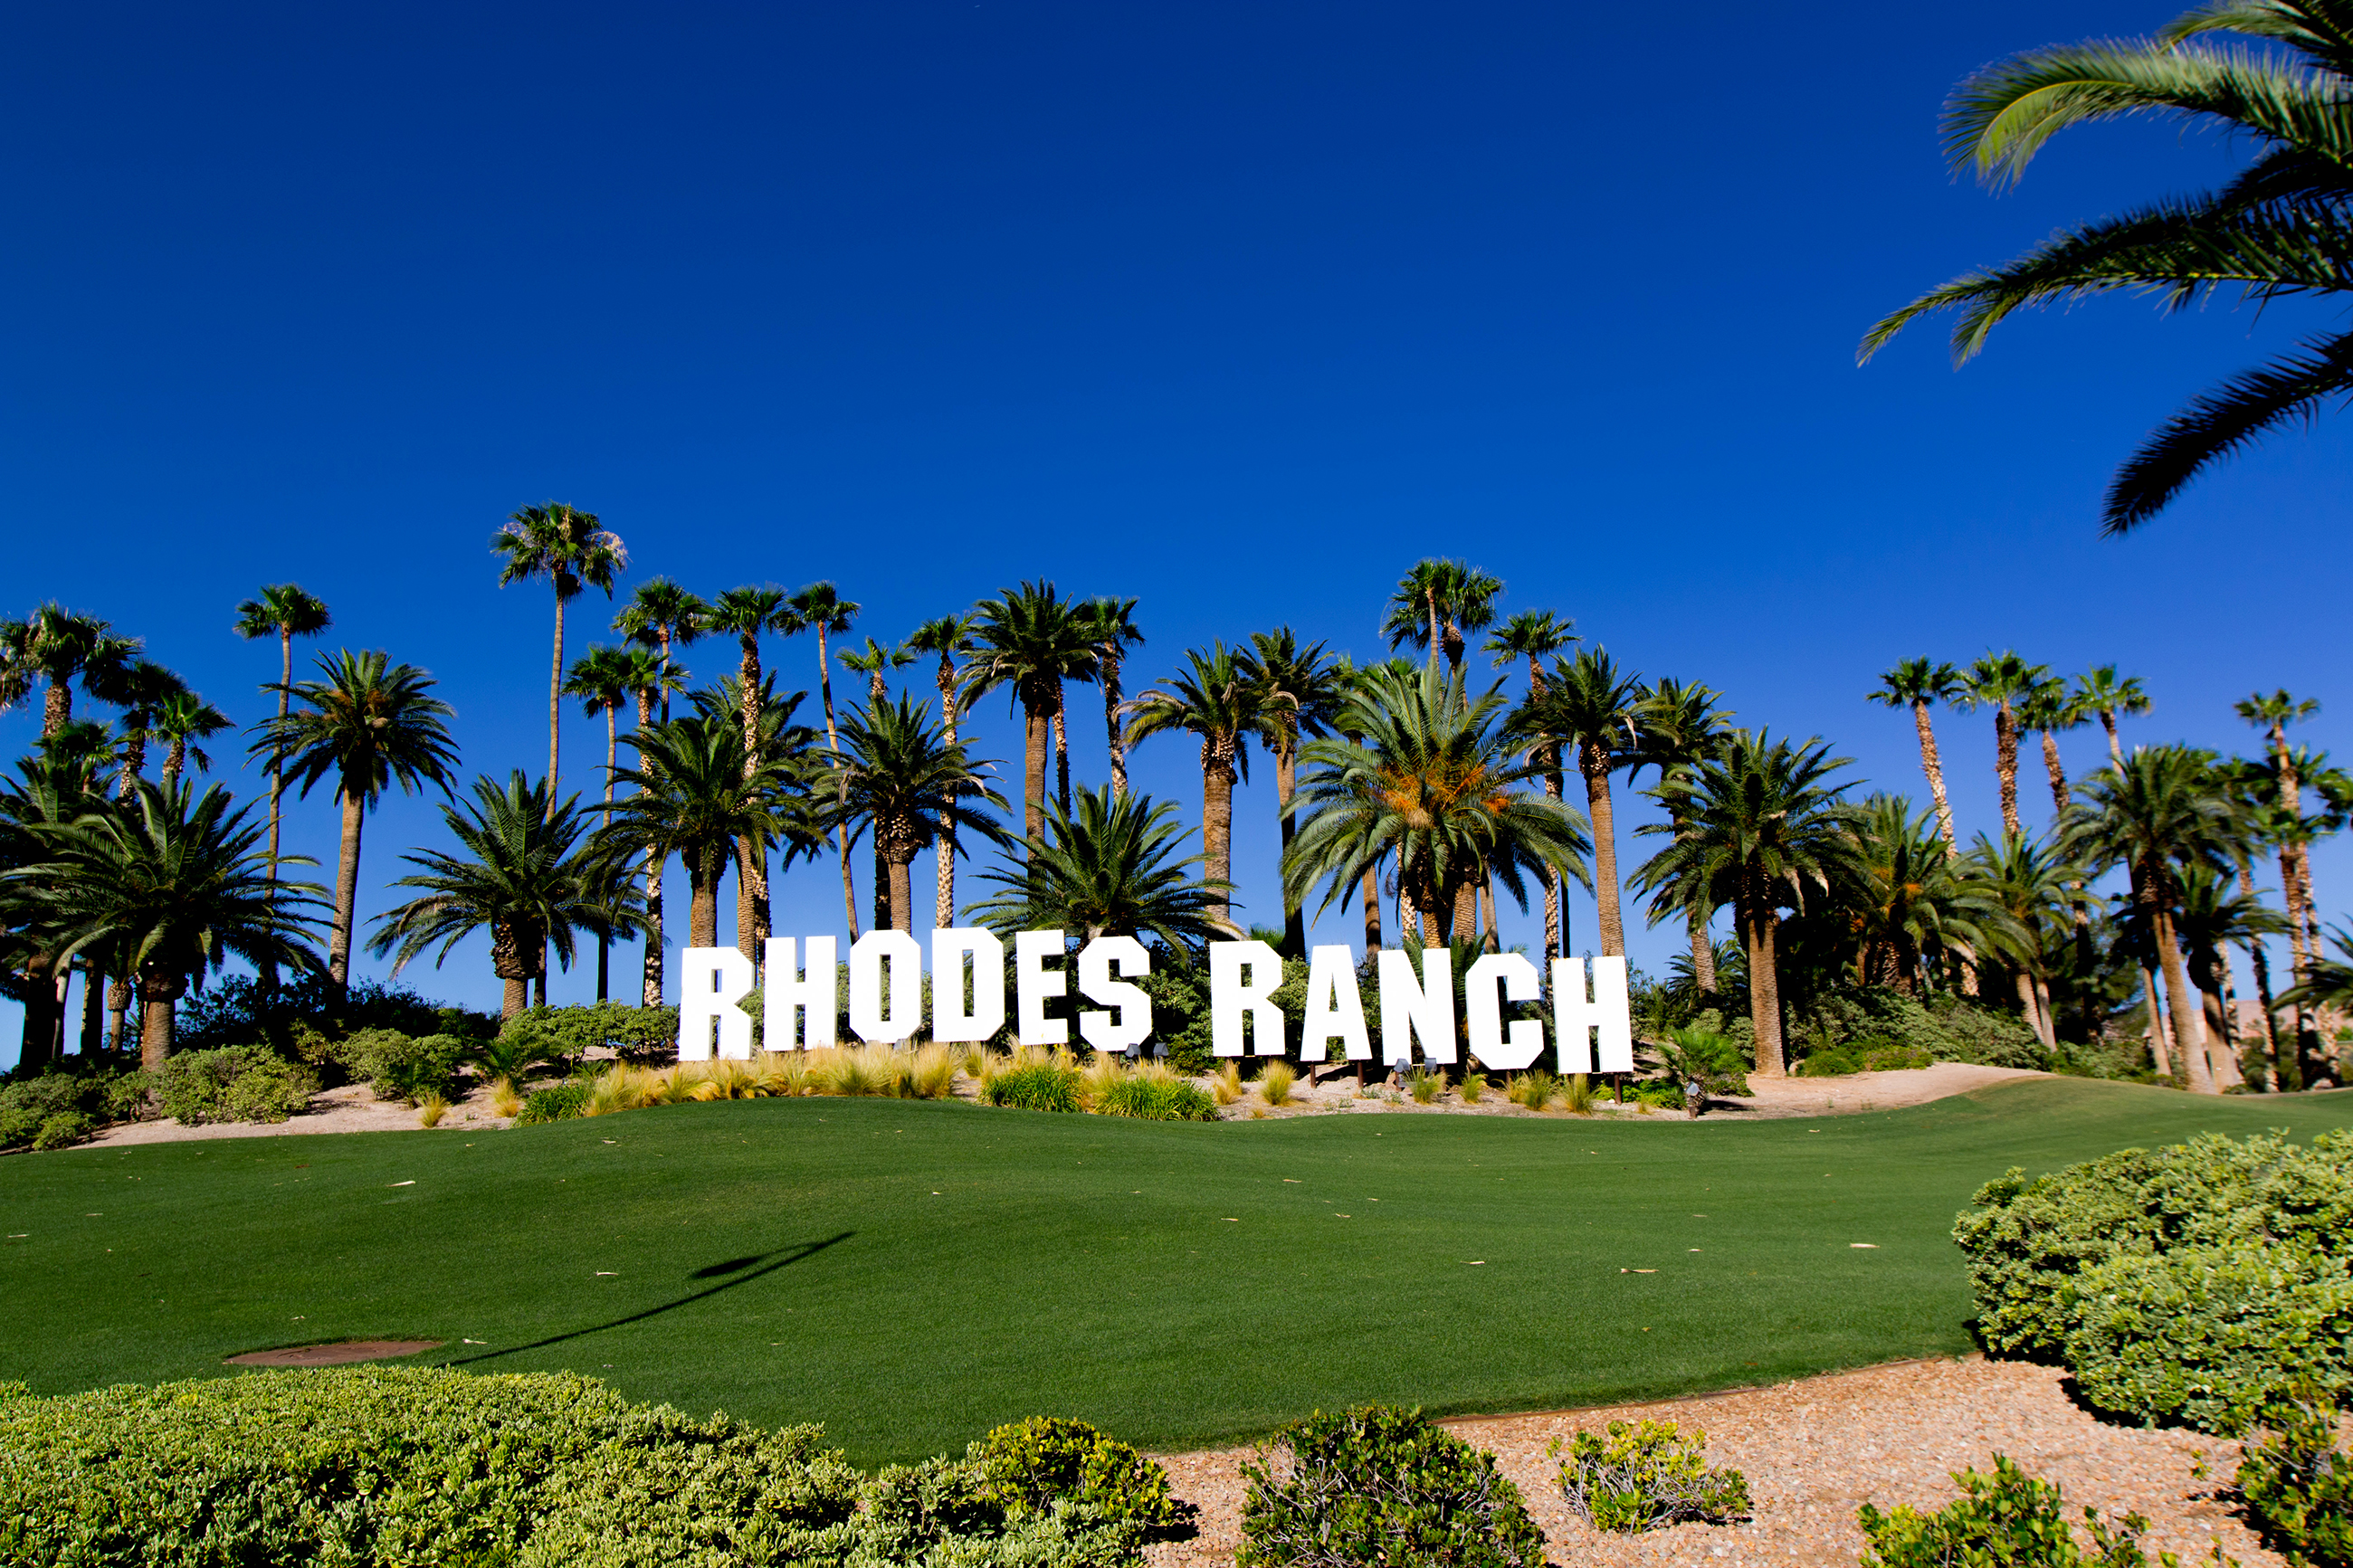 Las Vegas Luxury Homes For Sale >> Rhodes Ranch Homes for sale - Searching Luxury homes in Las Vegas - Luxury Real Estate